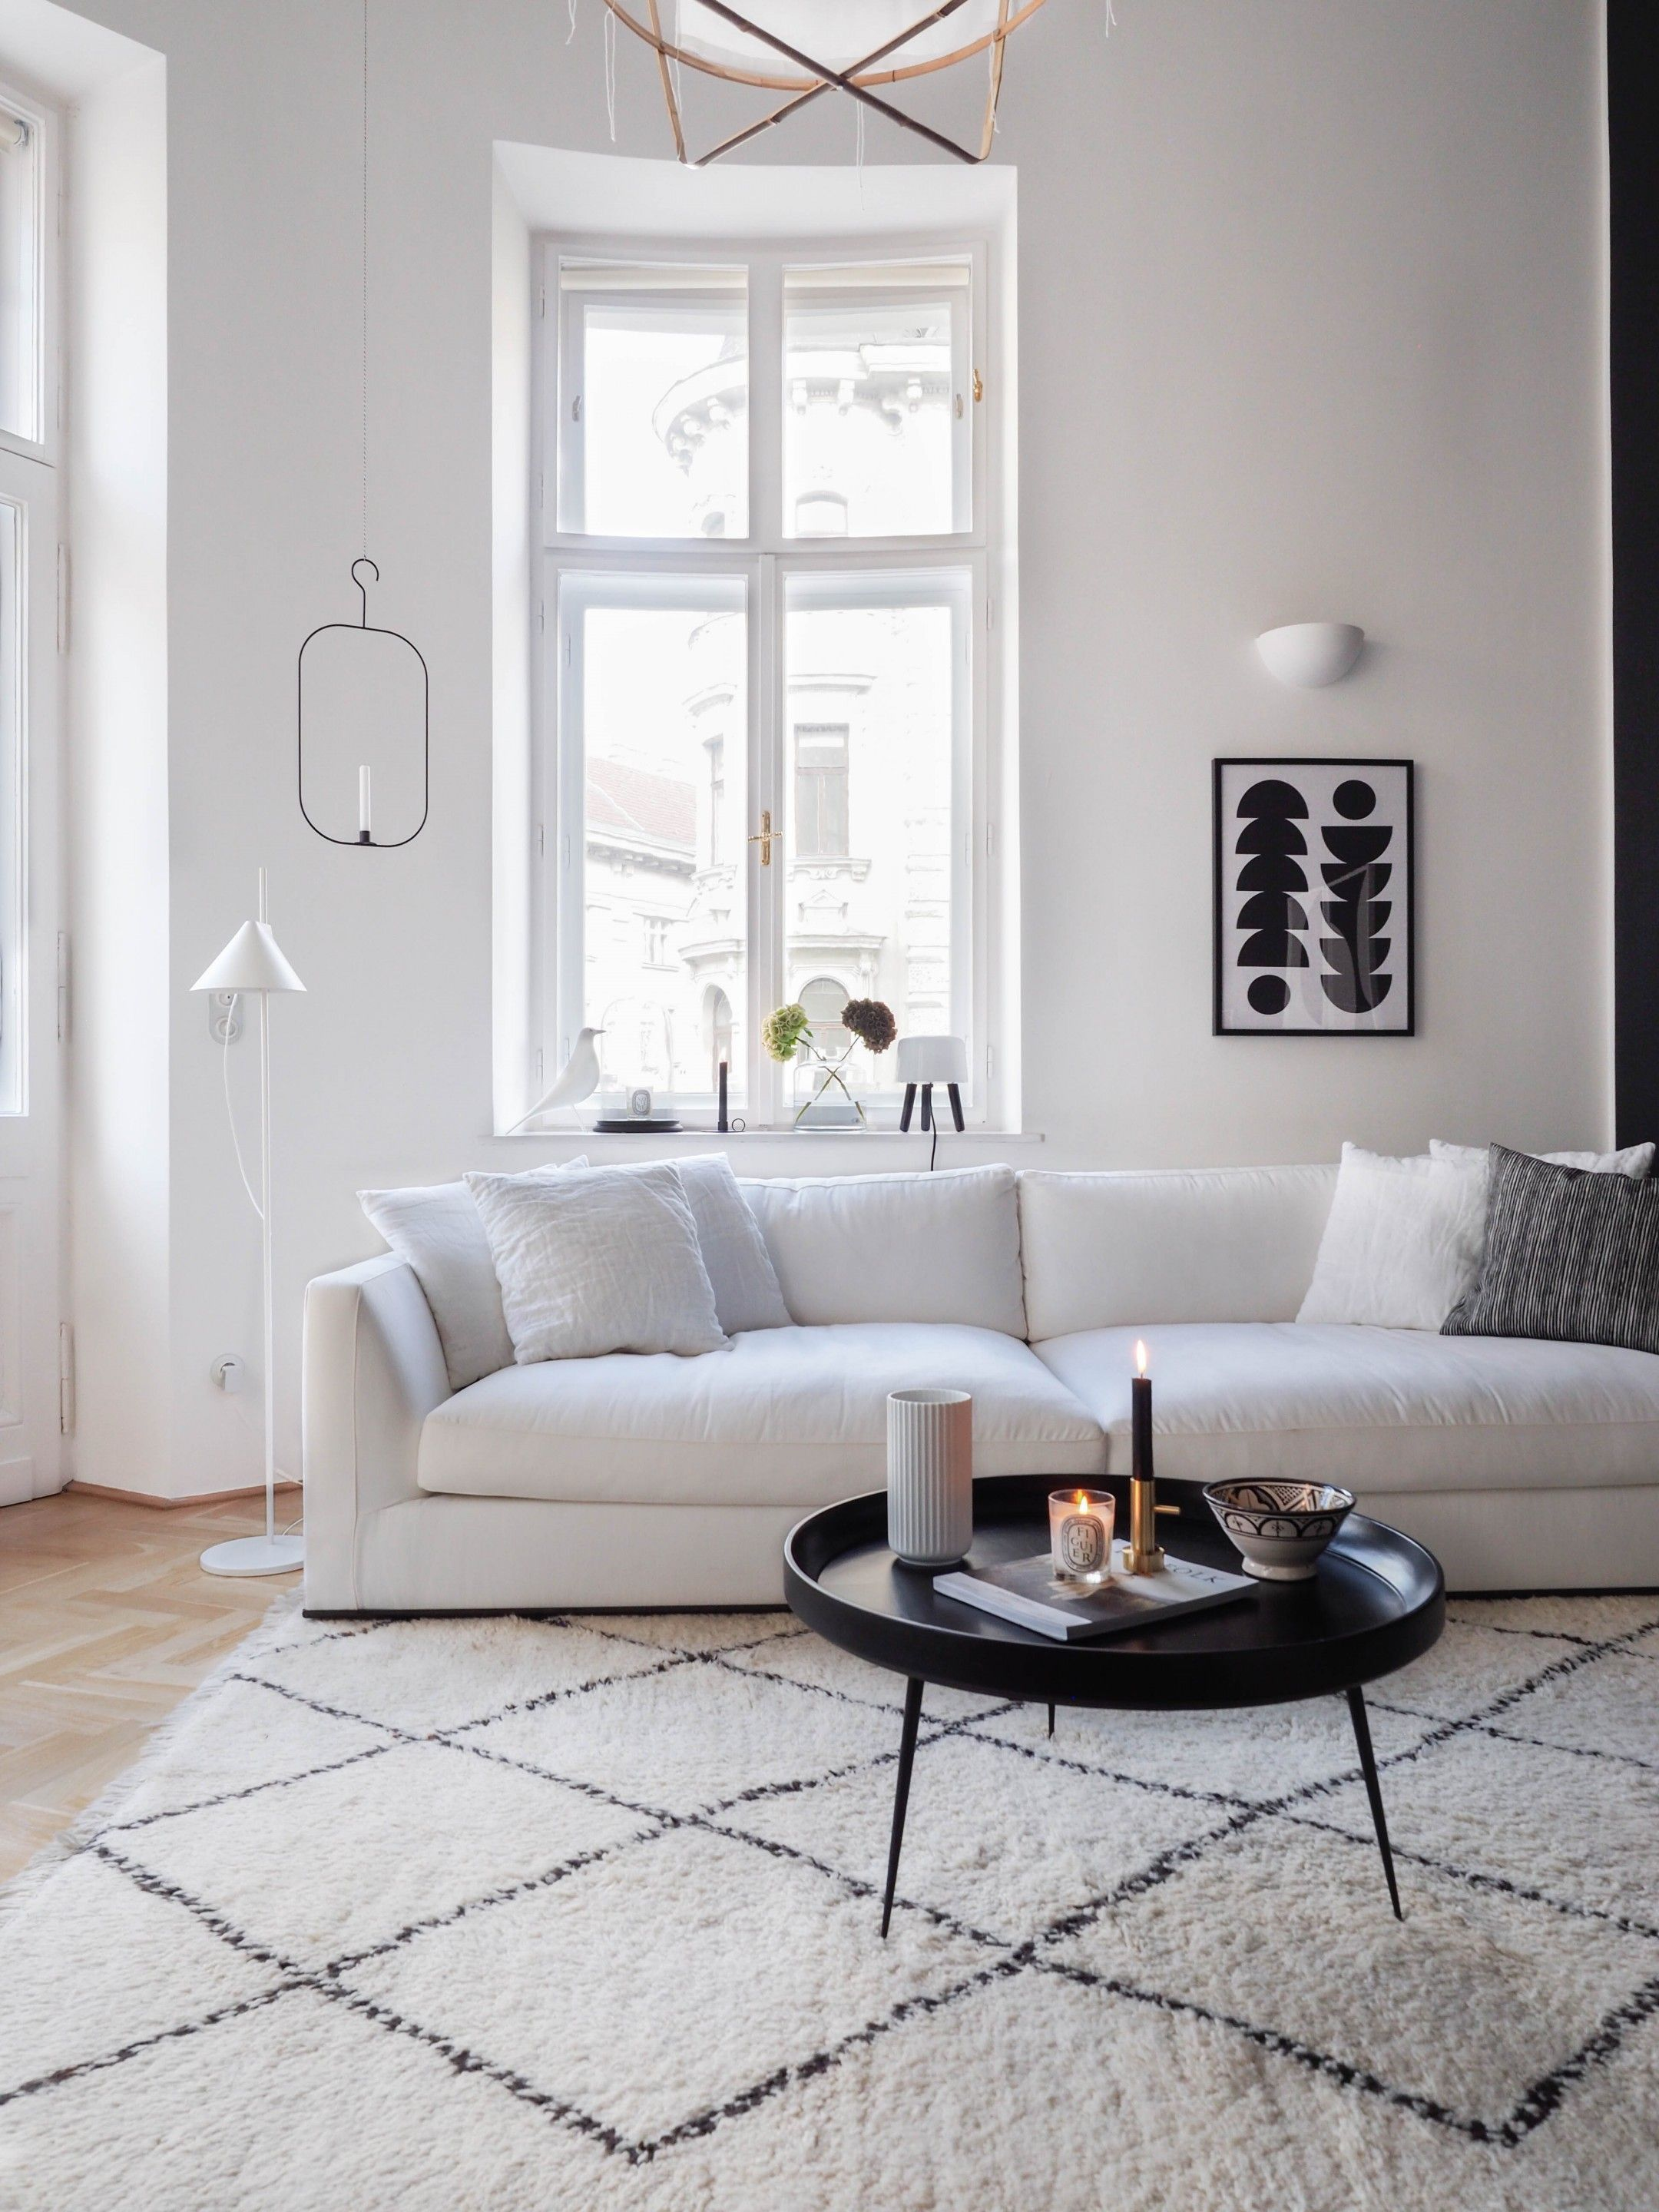 traumzuhause - A Personal Interior Design, Living & Lifestyle Blog ...